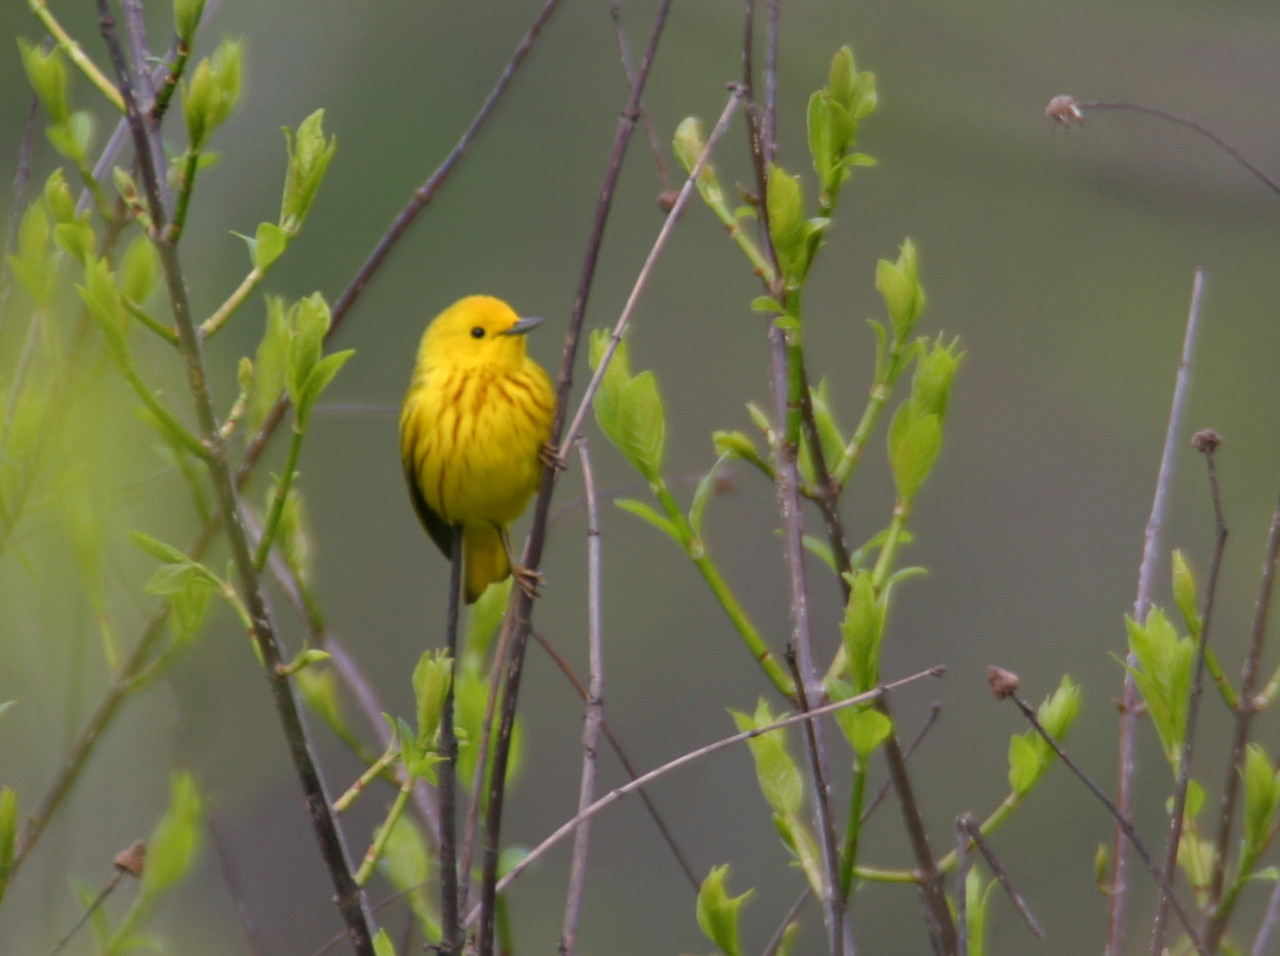 Yellow Warbler, Indiana Dunes State Park, May 23, 2005